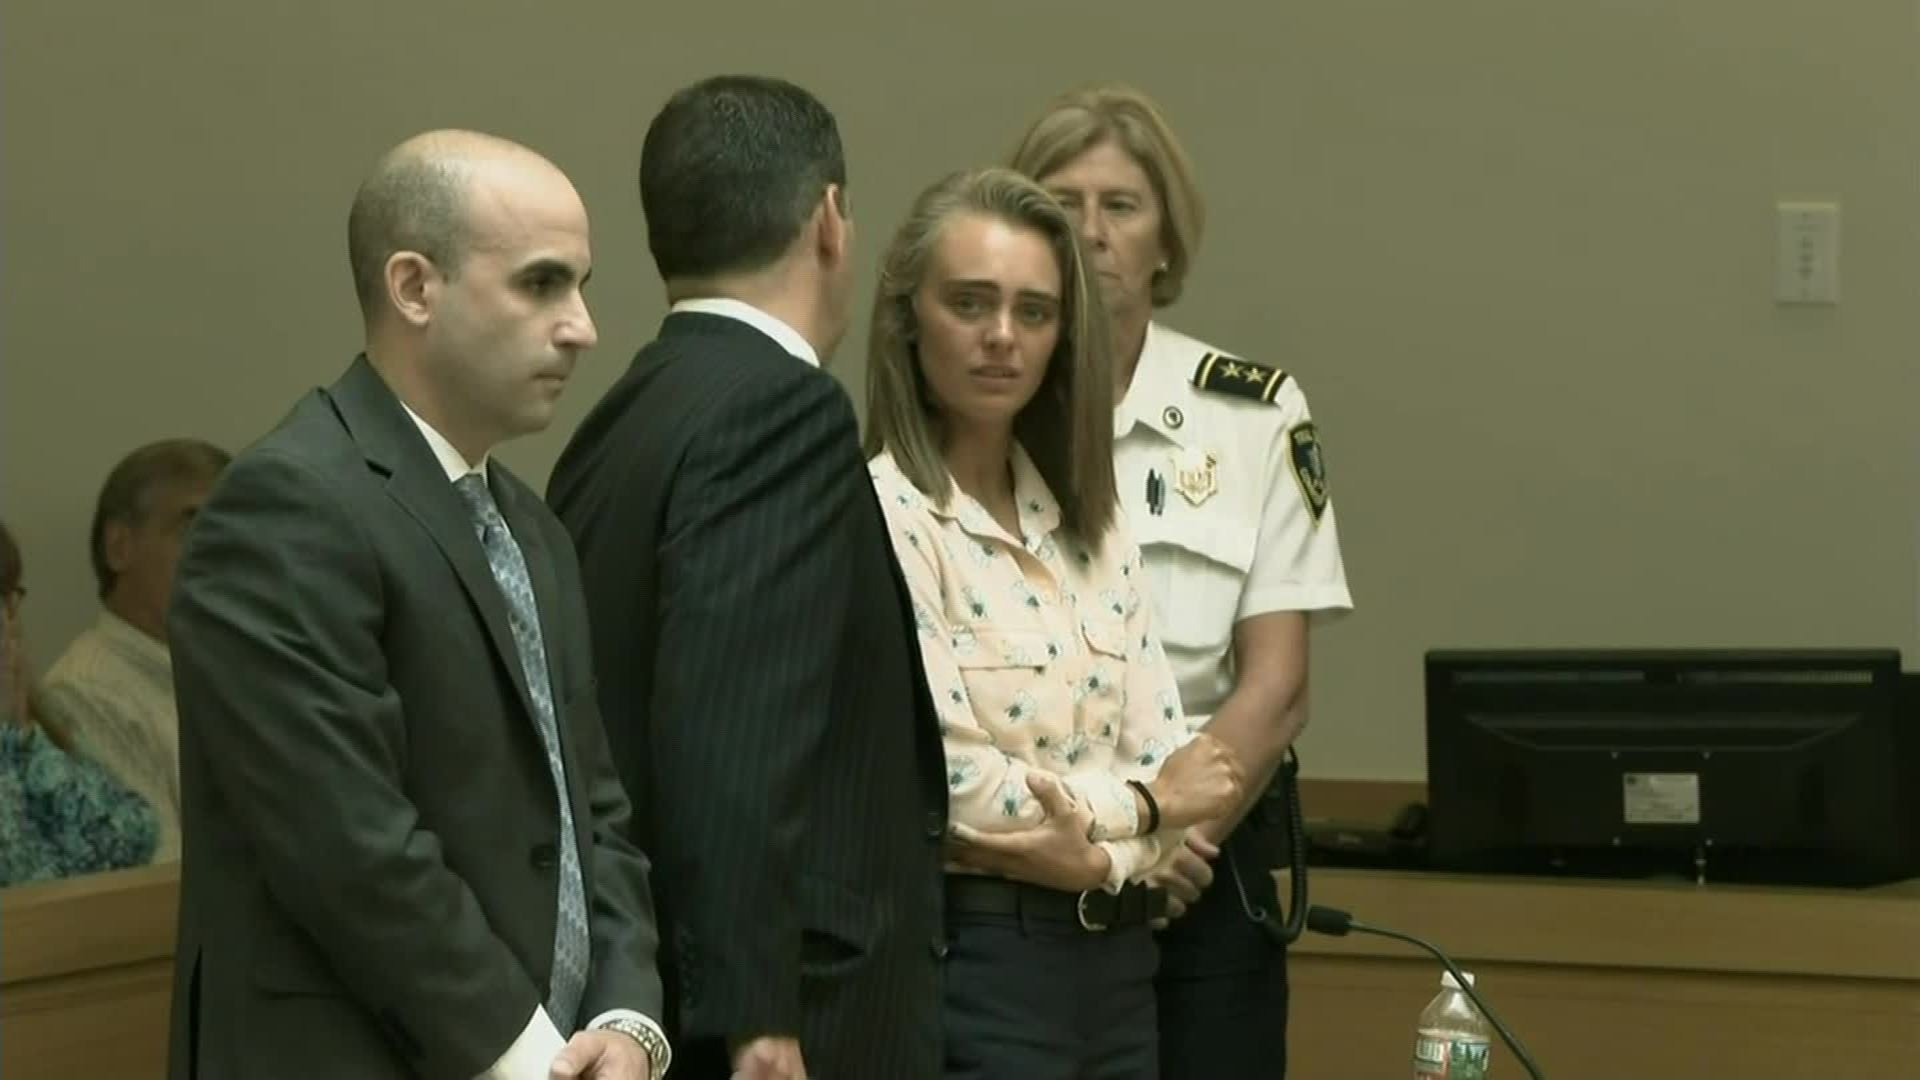 Michelle Carter appears in court in Massachusetts on Feb. 6, 2019. (Credit: Pool via CNN)